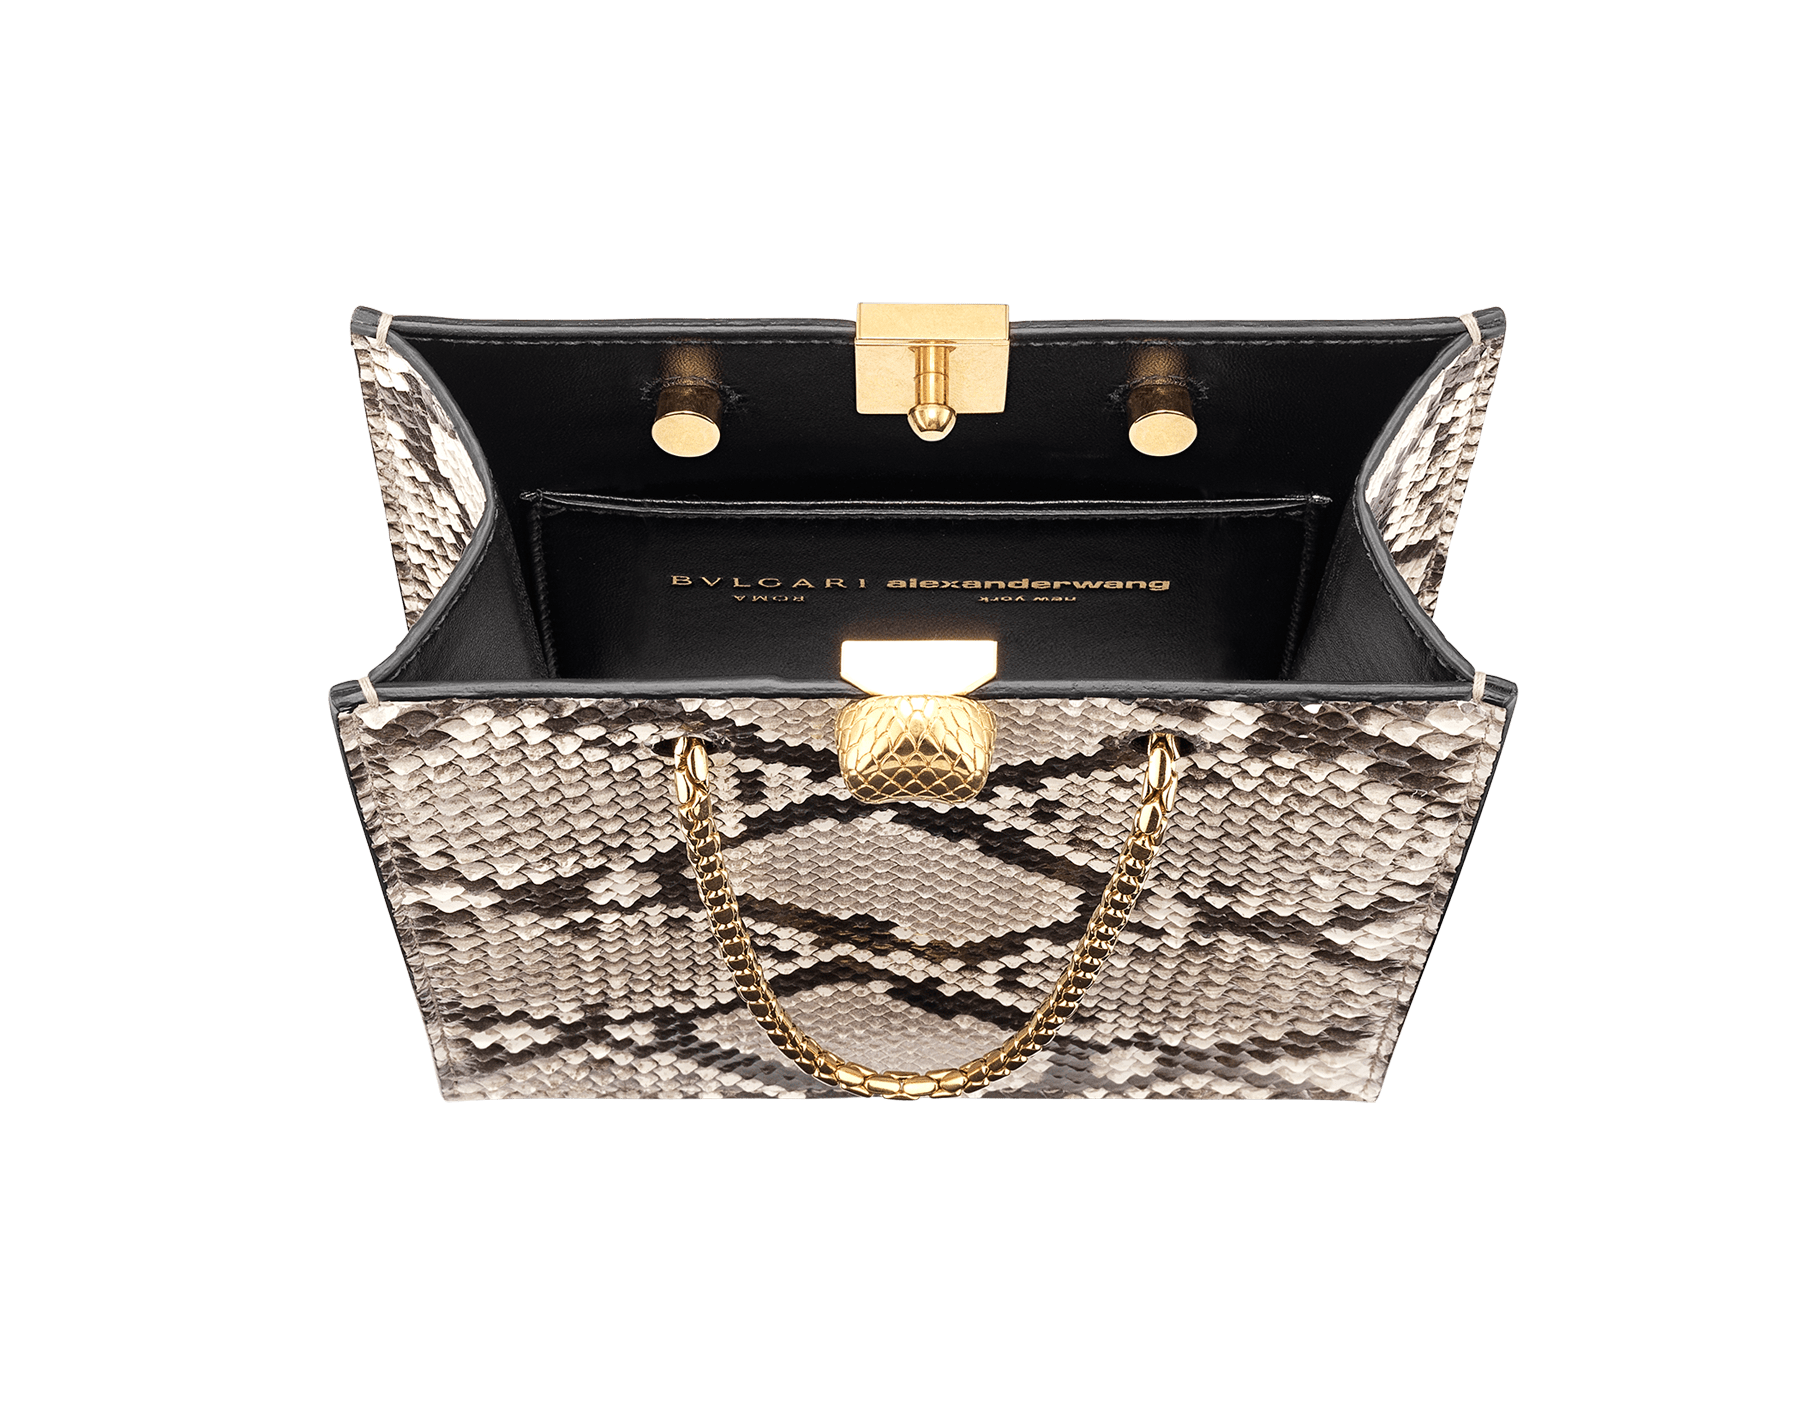 Alexander Wang x Bvlgari mini shopping tote bag in natural python skin and black calf leather. New Serpenti head closure in antique gold plated brass with tempting red enamel eyes. Limited edition. 288732 image 4